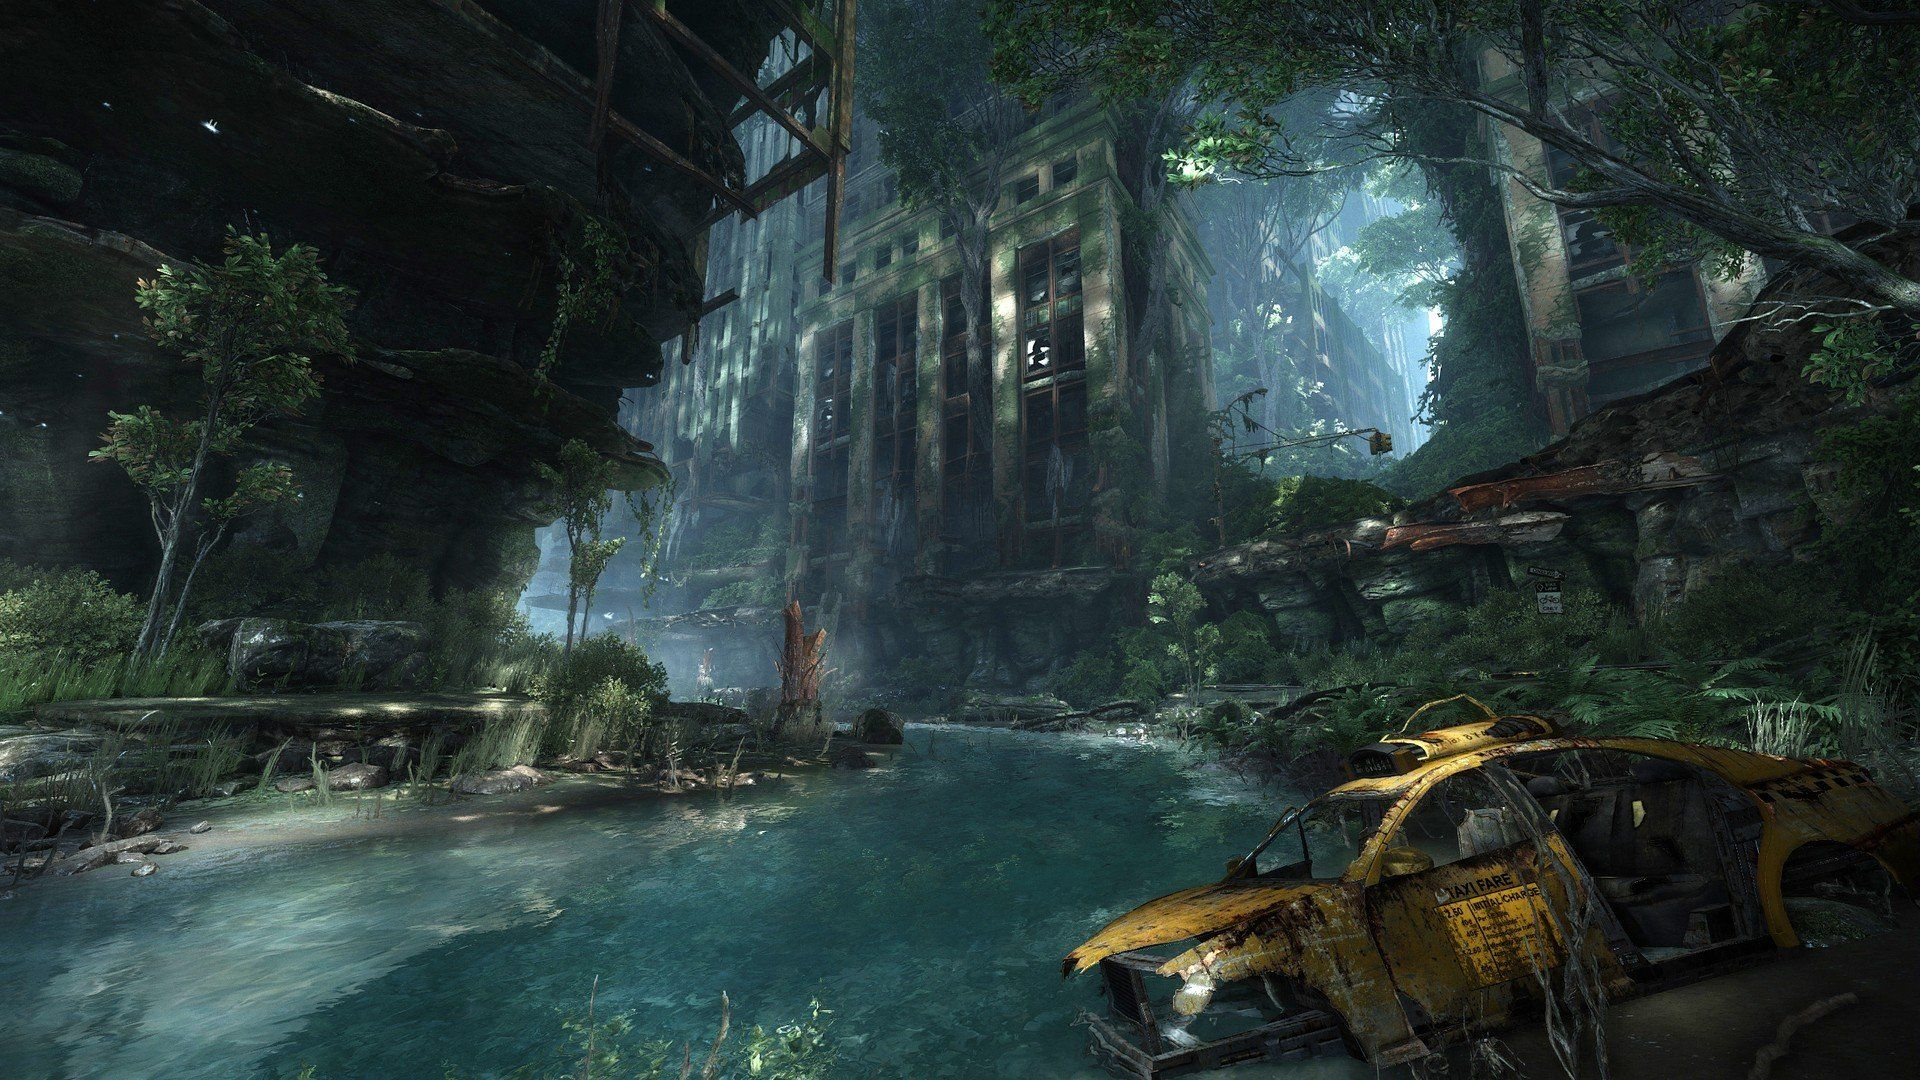 Water video games Crysis destroyed abandoned city